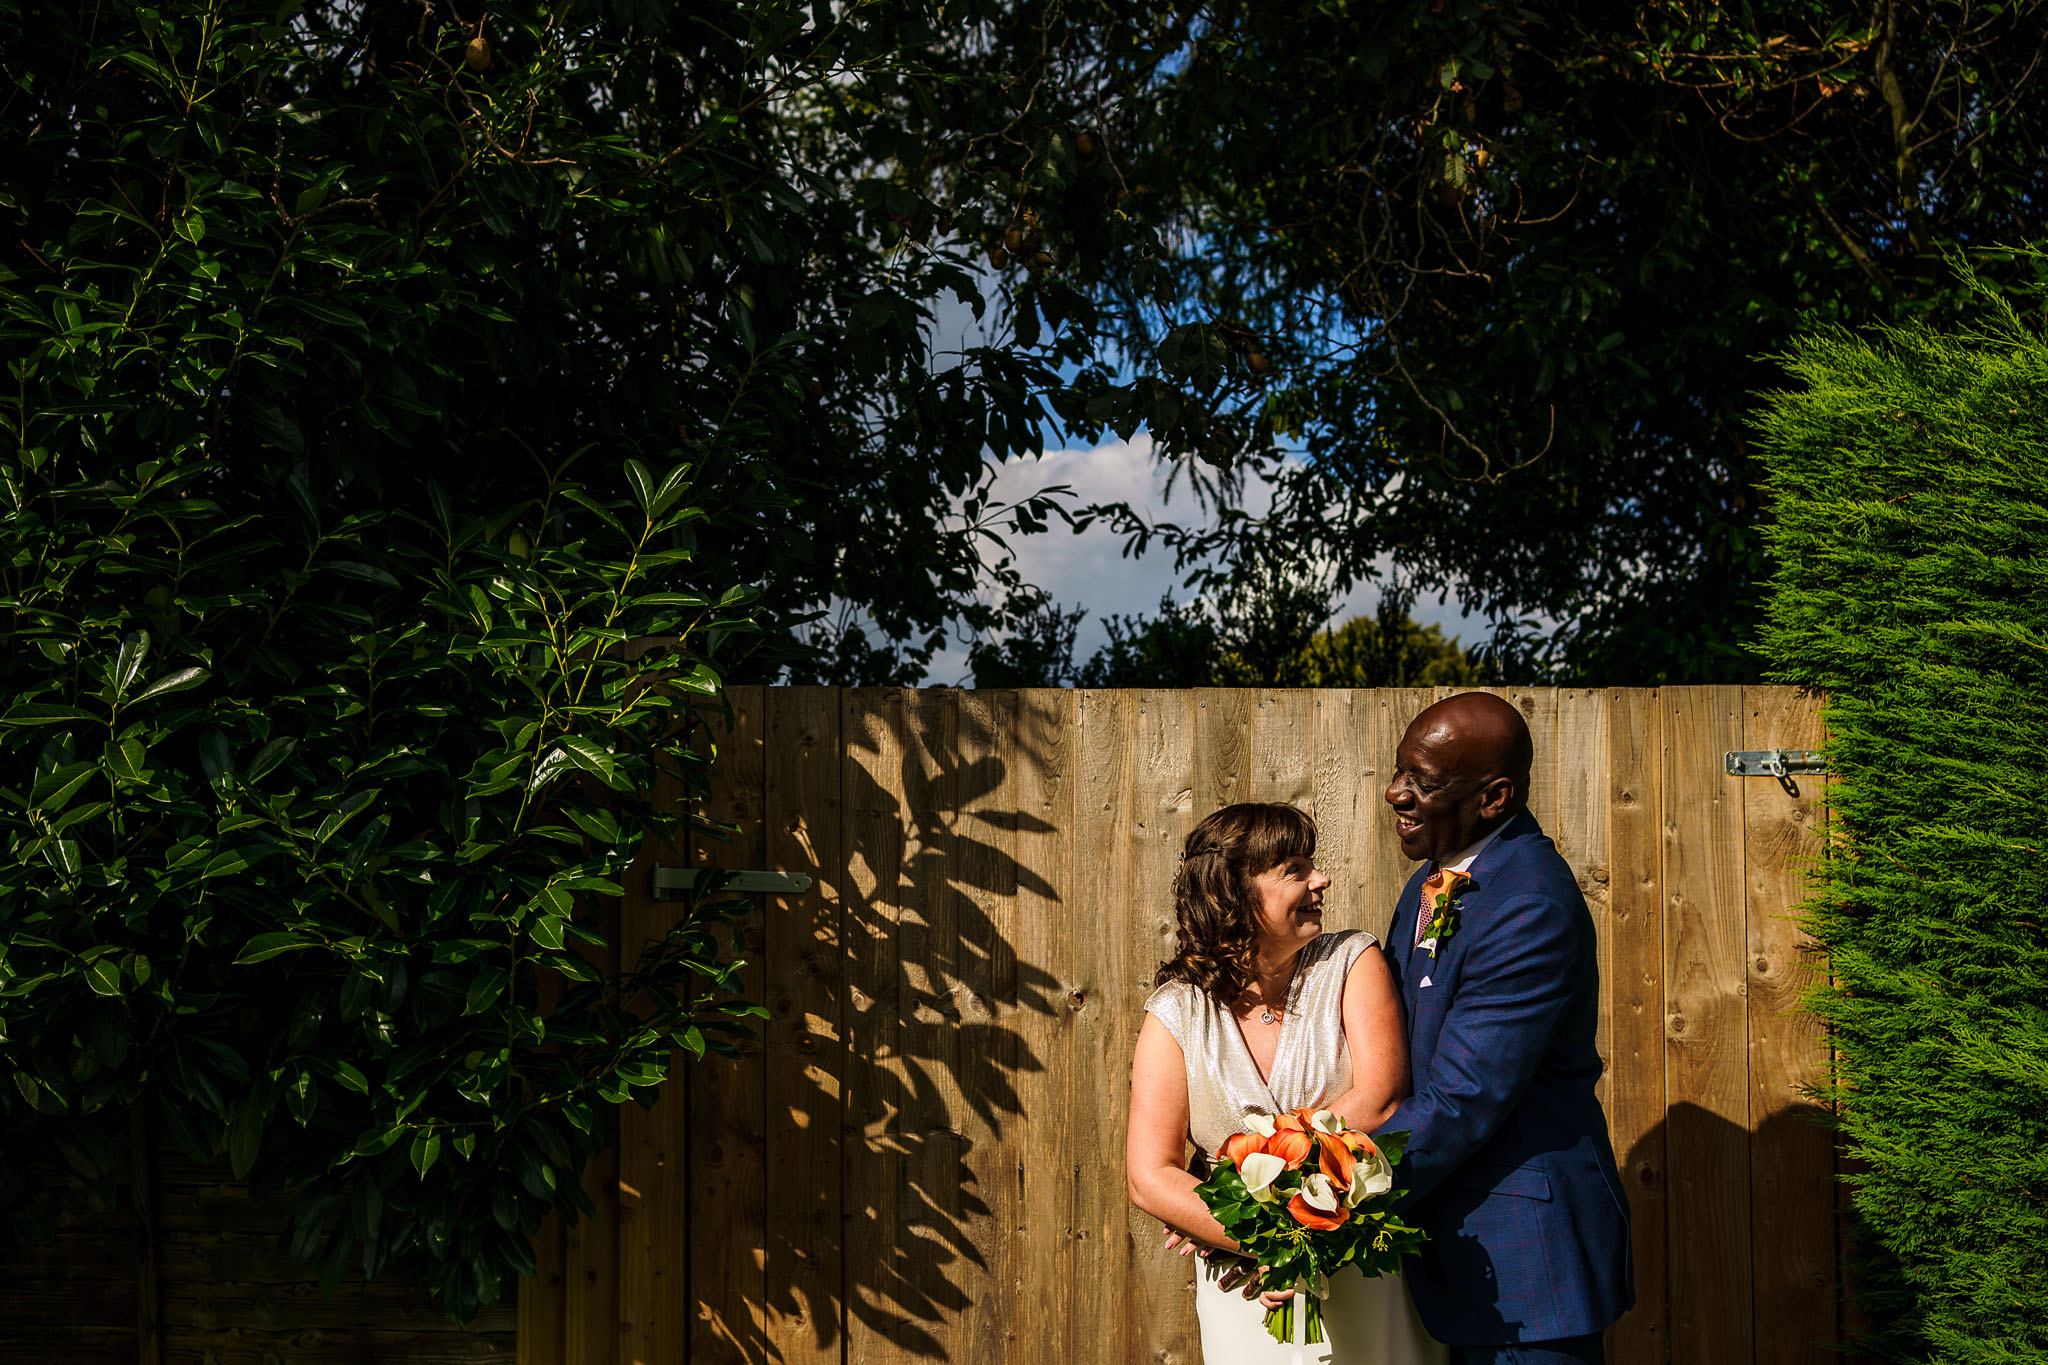 portrait of the bride and groom in the sunshine